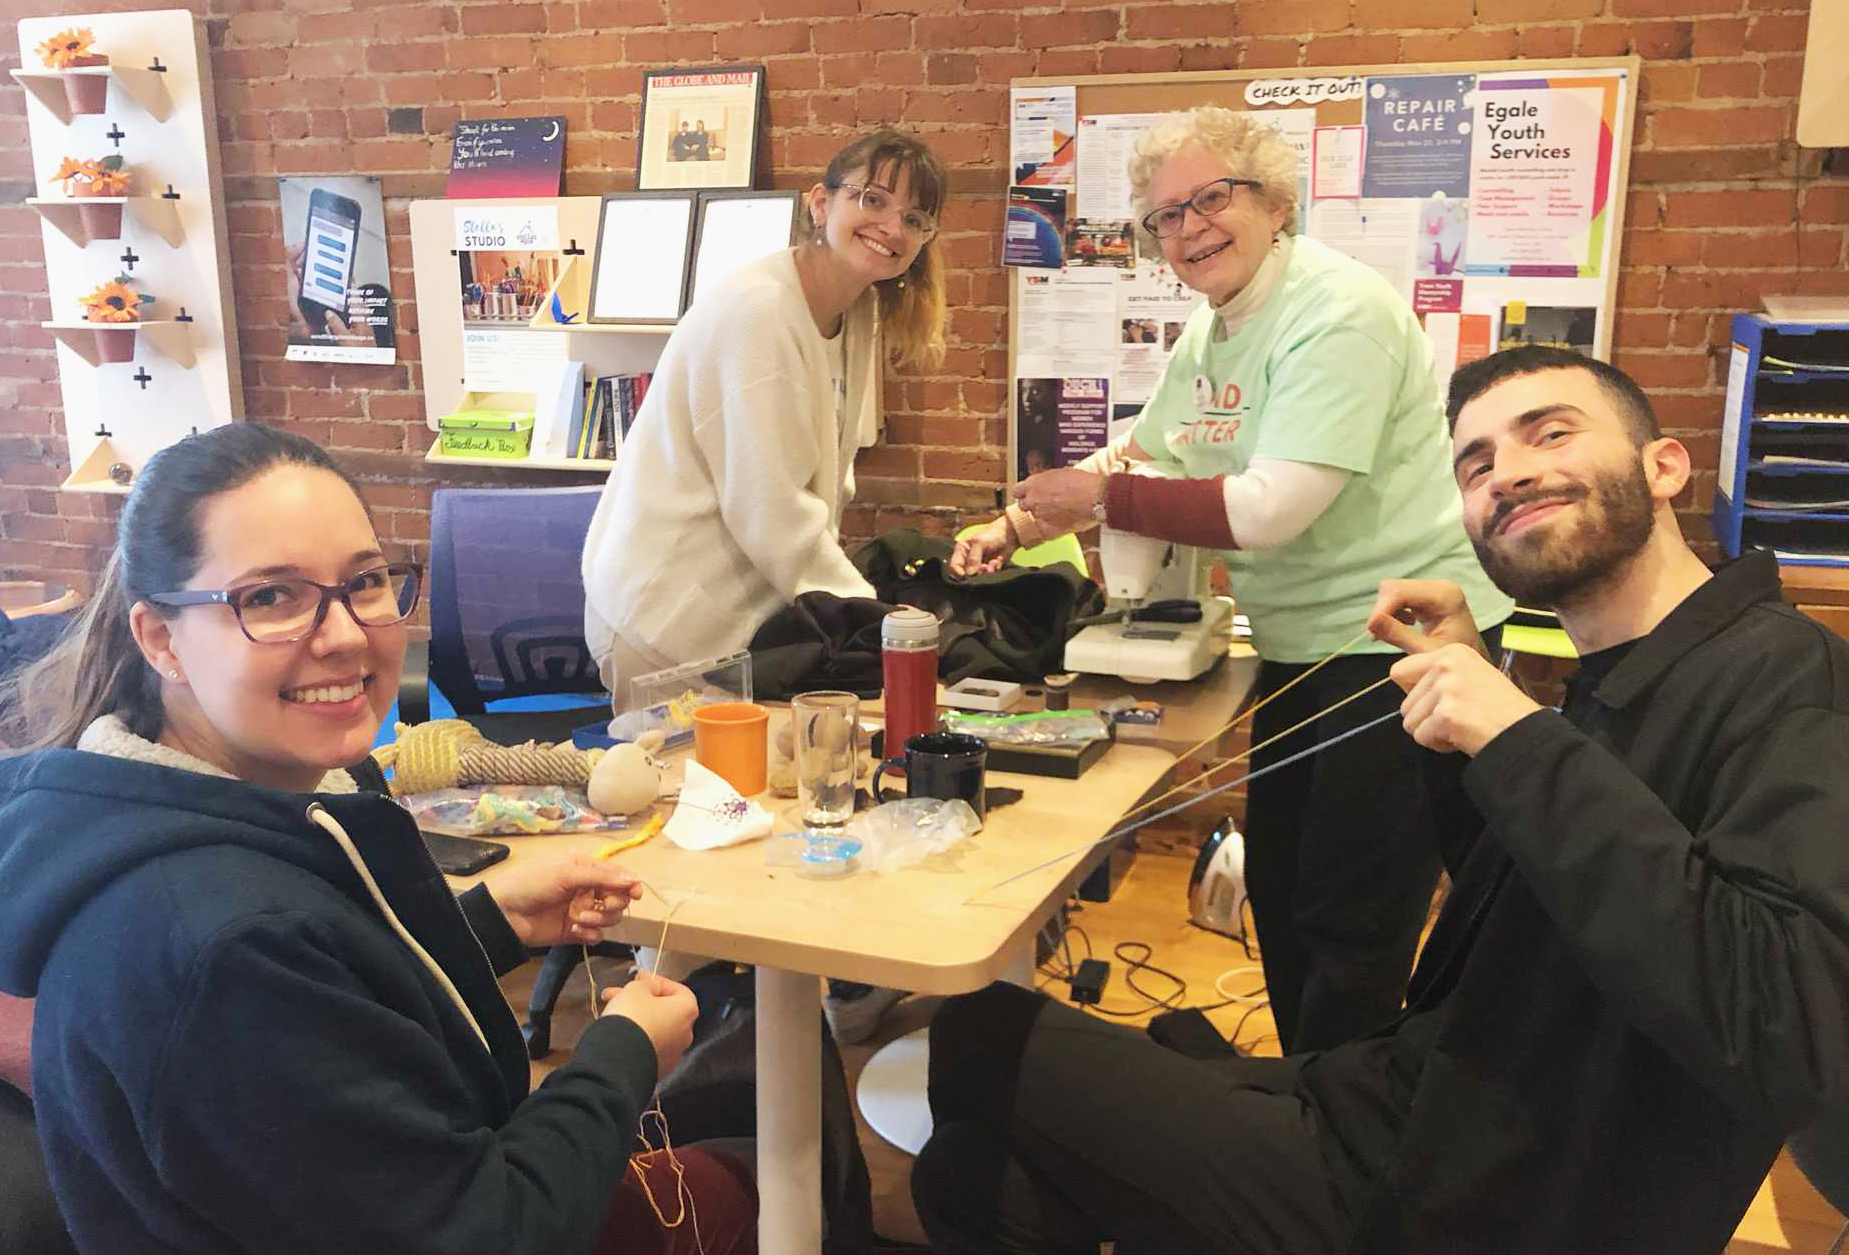 4 people in Stella's Place café gathered at a table andposing for a photo